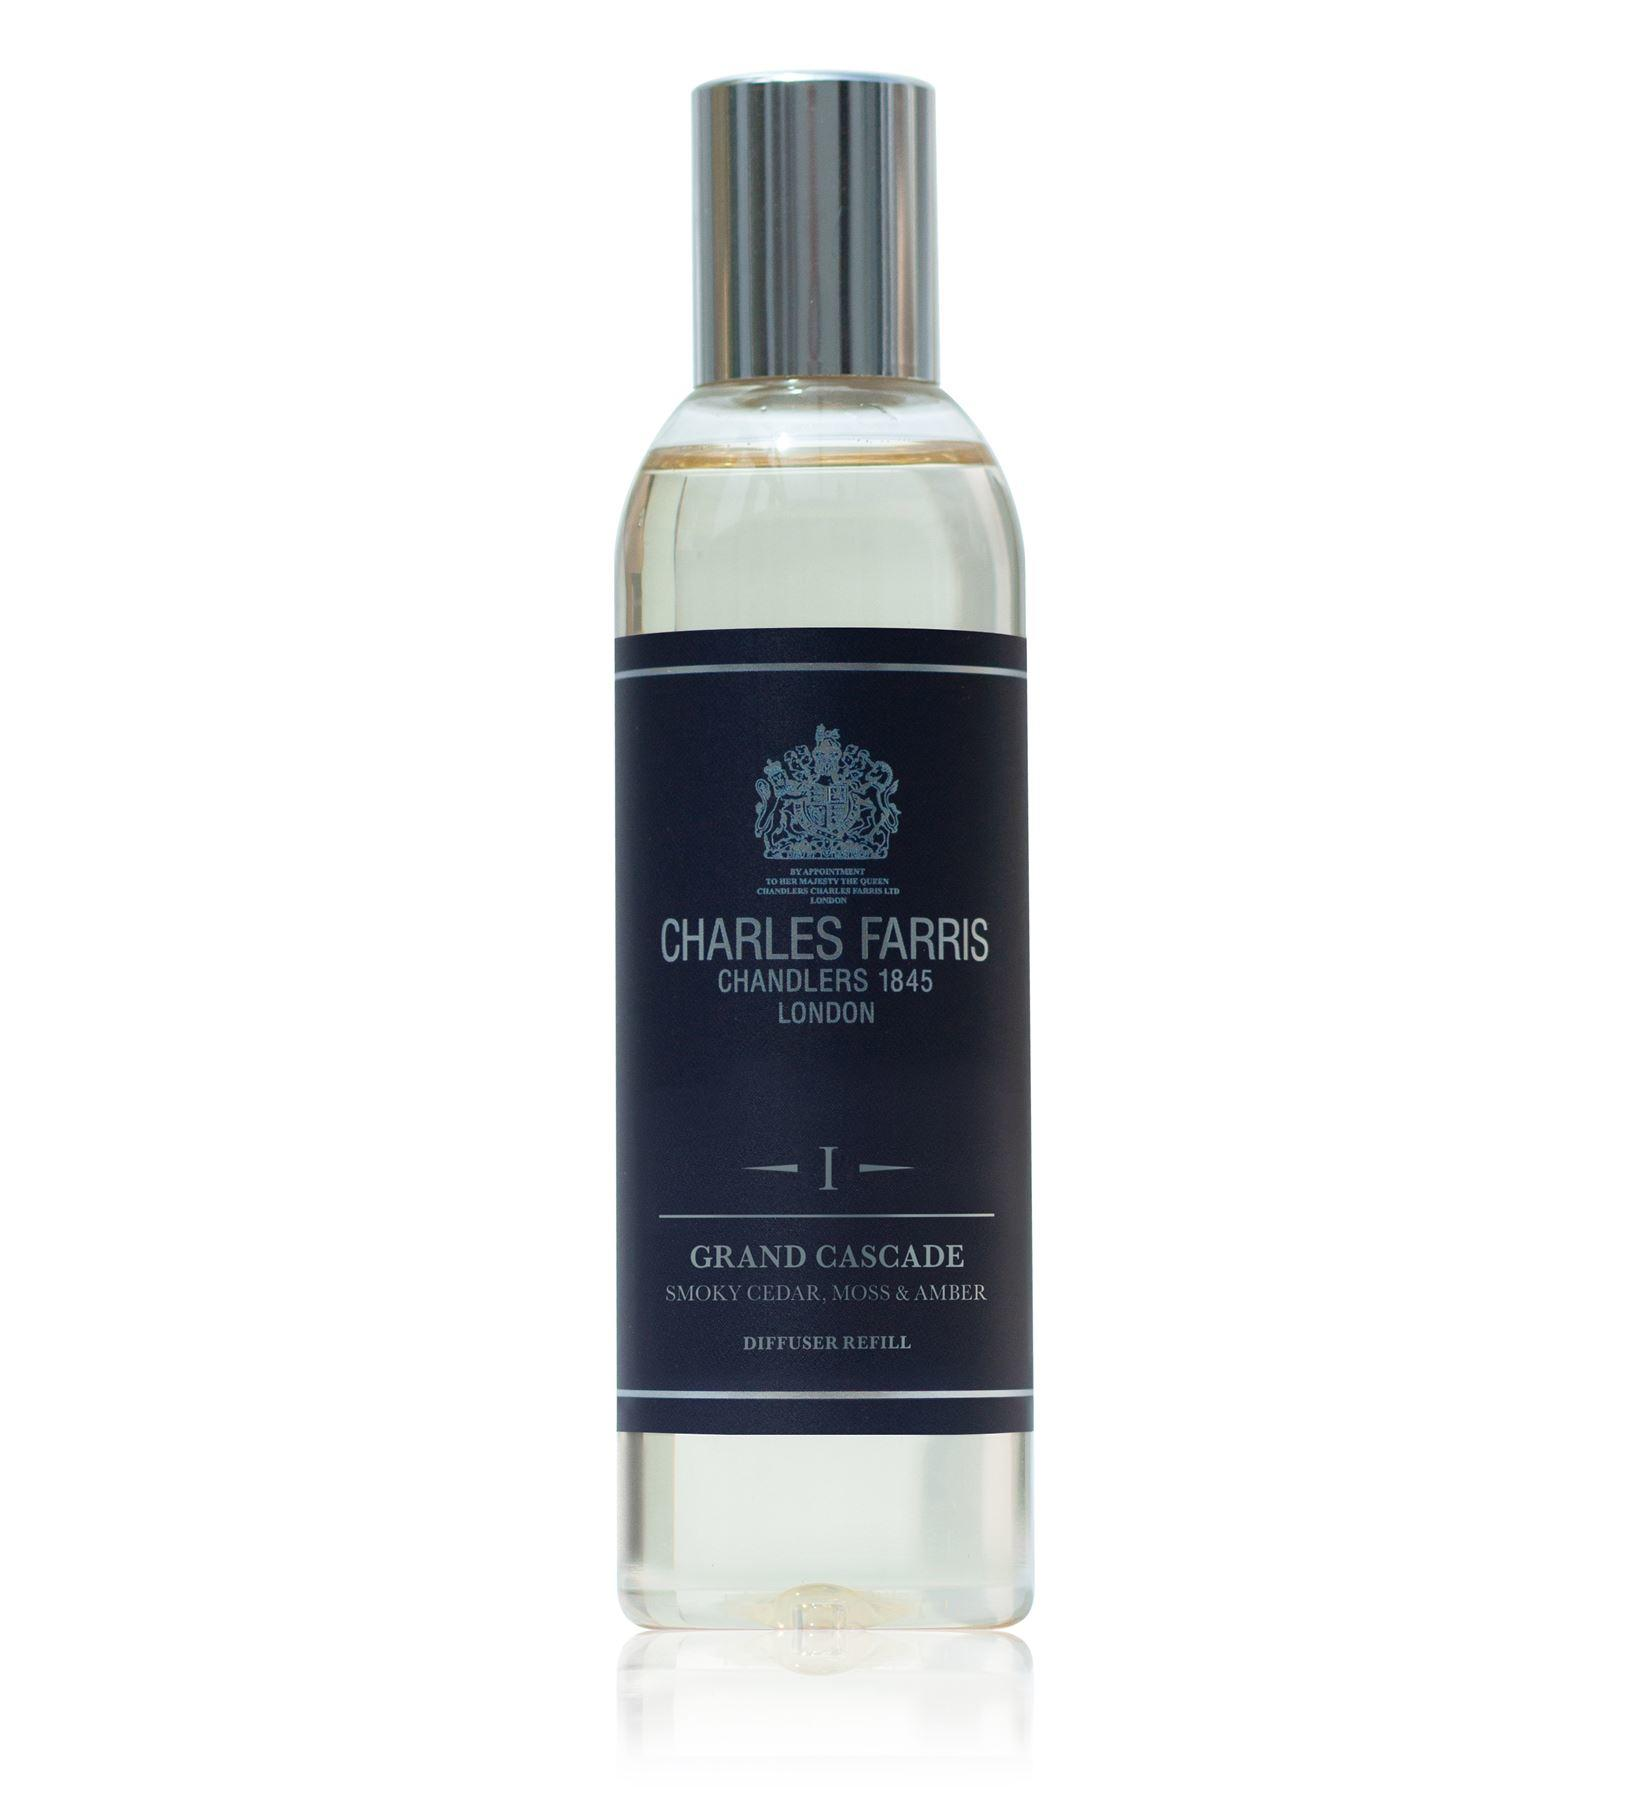 Charles Farris I Grand Cascade Reed Diffuser Oil Refill